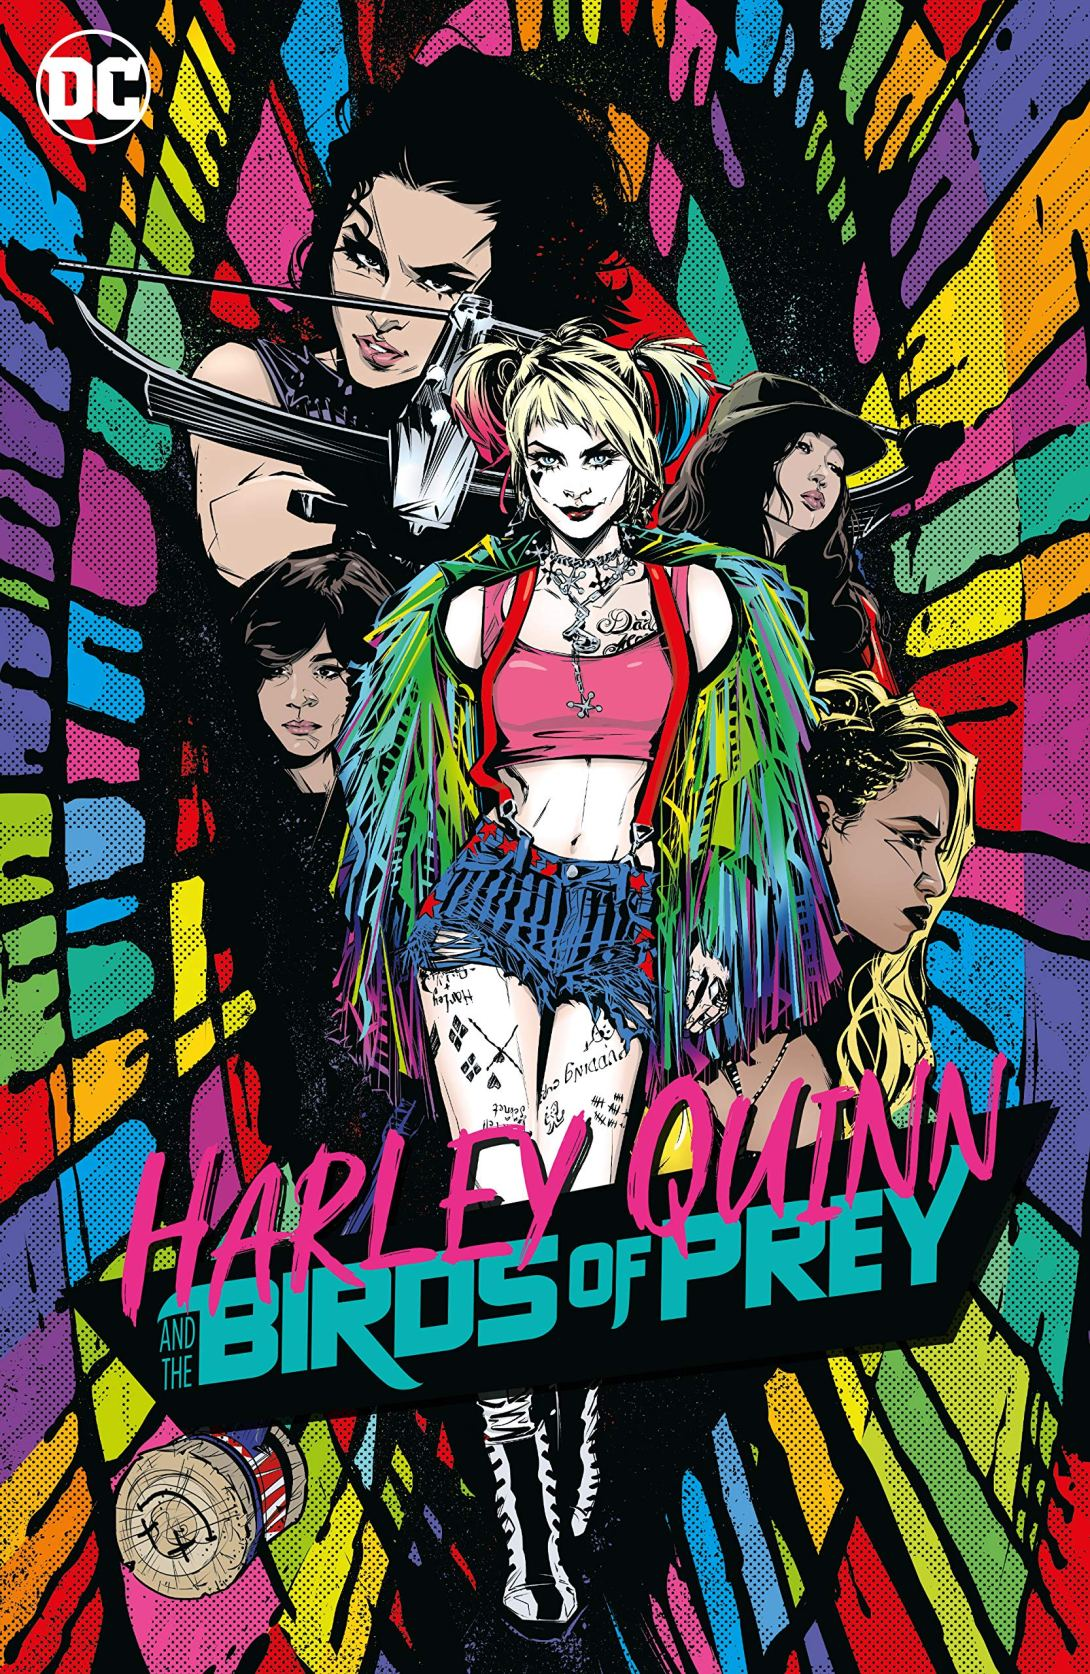 Birds Of Prey Graphic Novel Tie In Coming In November Dc Comics News